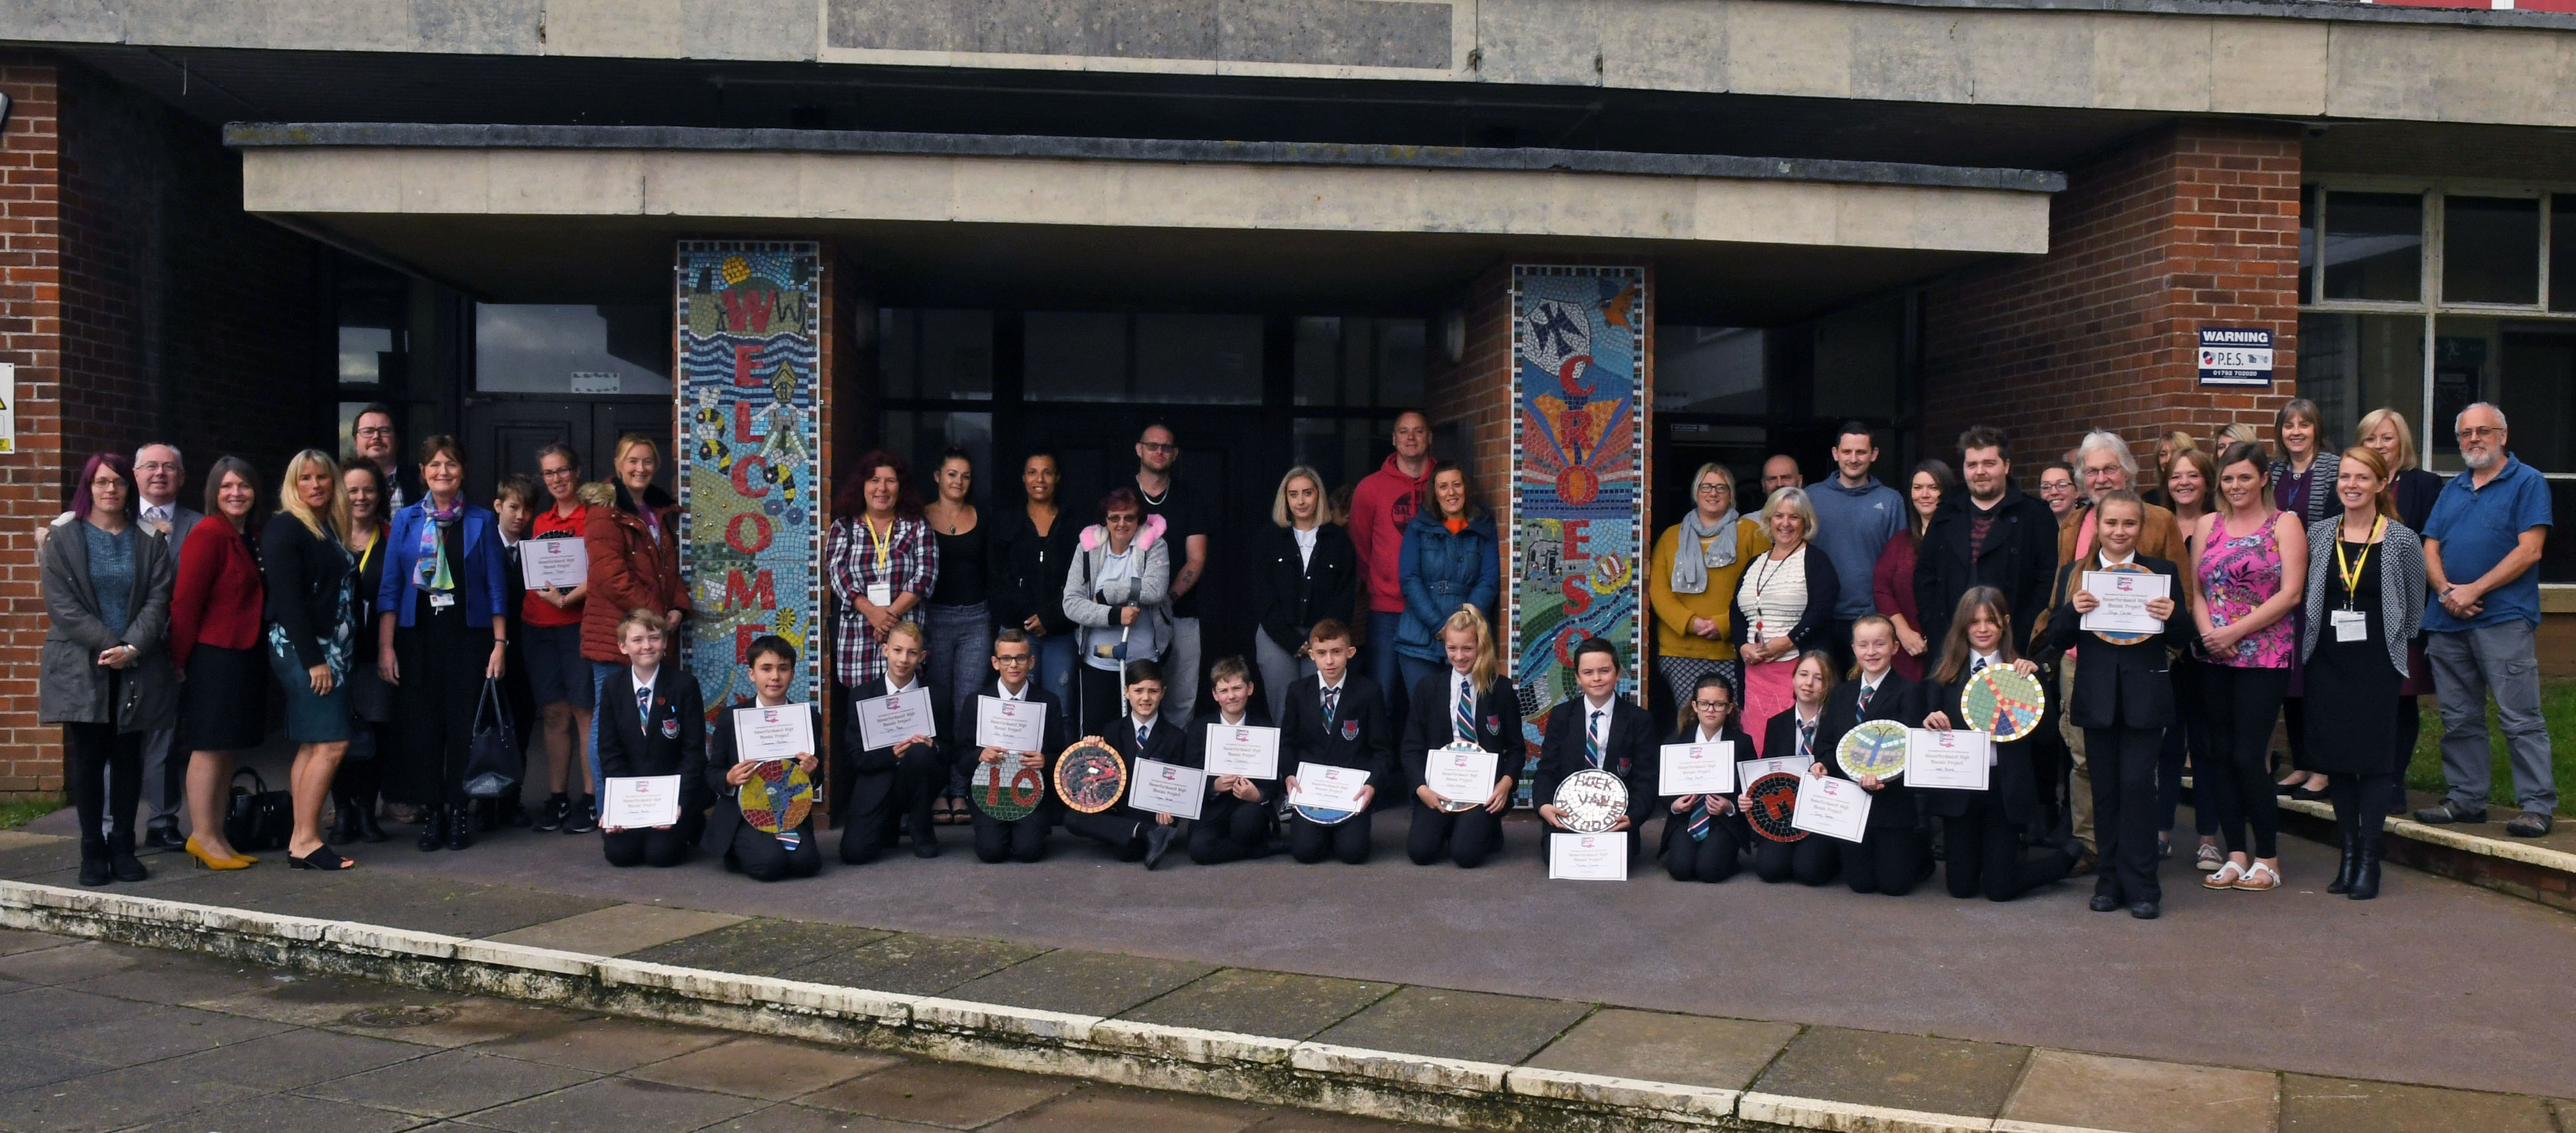 New mosaic for Pembrokeshire School – The Pembrokeshire Herald